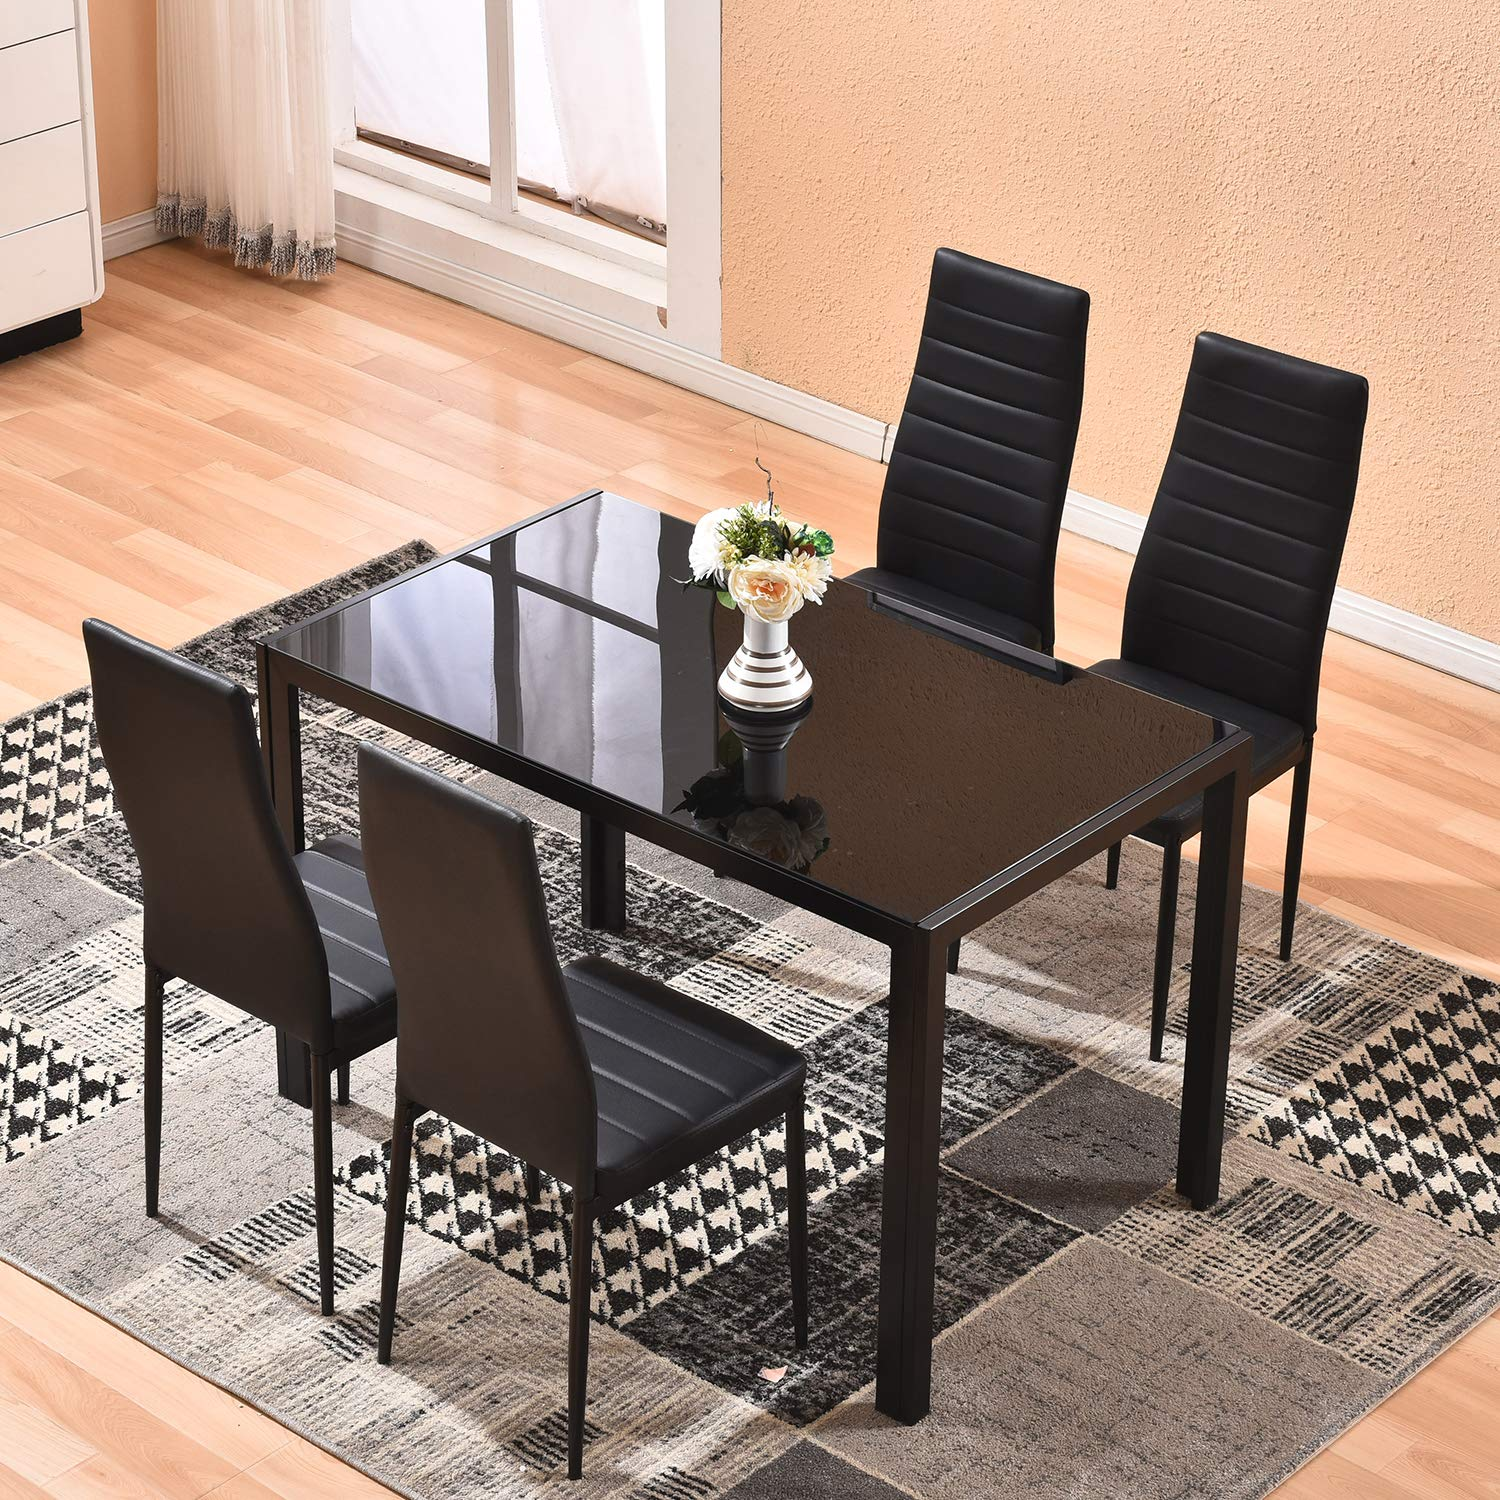 Dining Table with Chairs,4HOMART 5 PCS Glass Dining Kitchen Table Set Modern Tempered Glass Top Table and PU Leather Chairs with 4 Chairs Dining Room Furniture Black